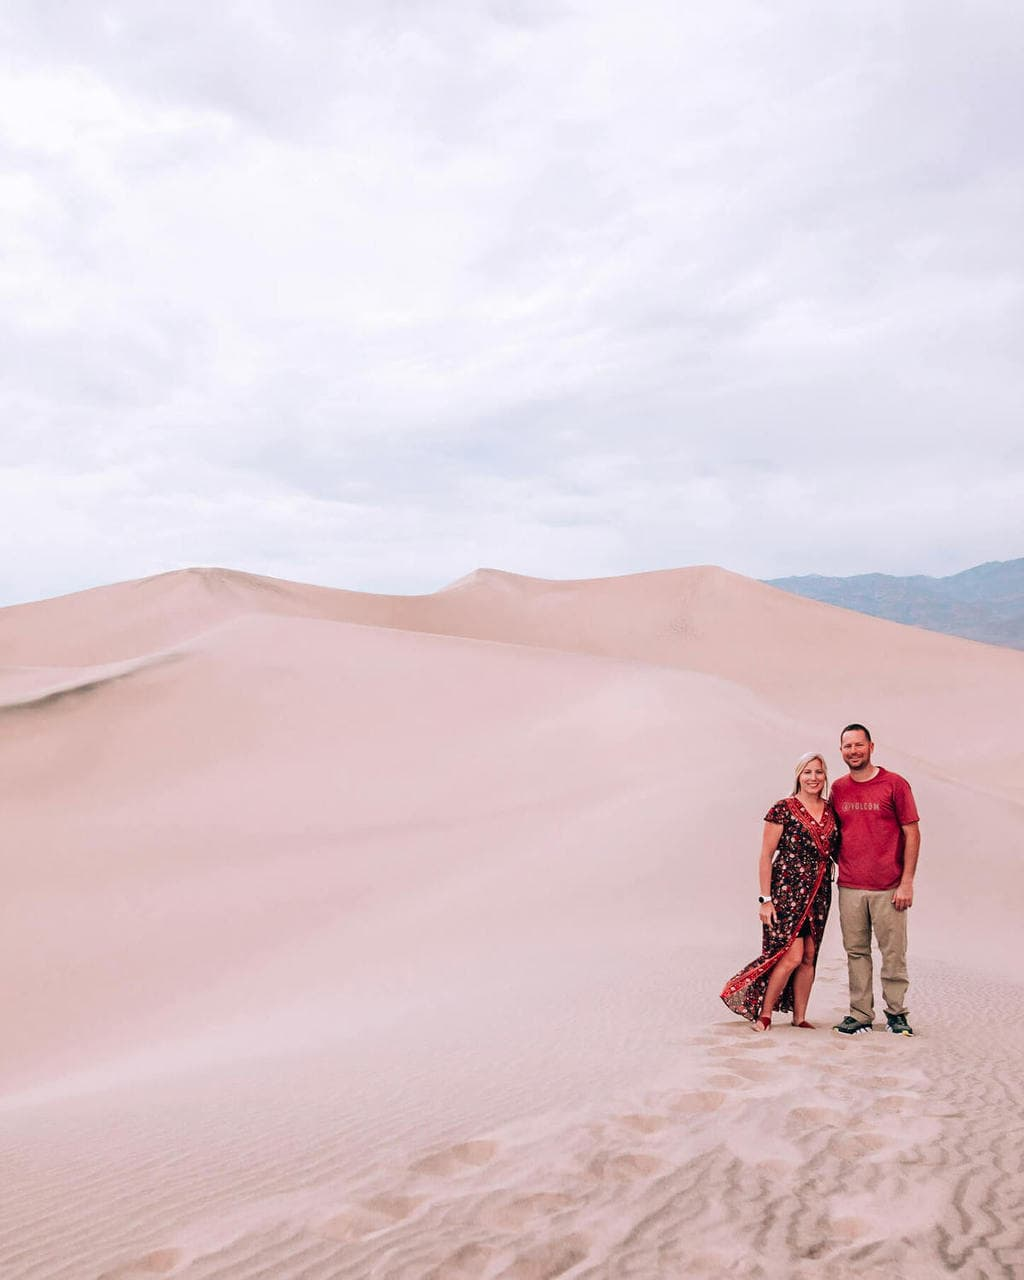 A couple on the sand dunes in Death Valley National Park